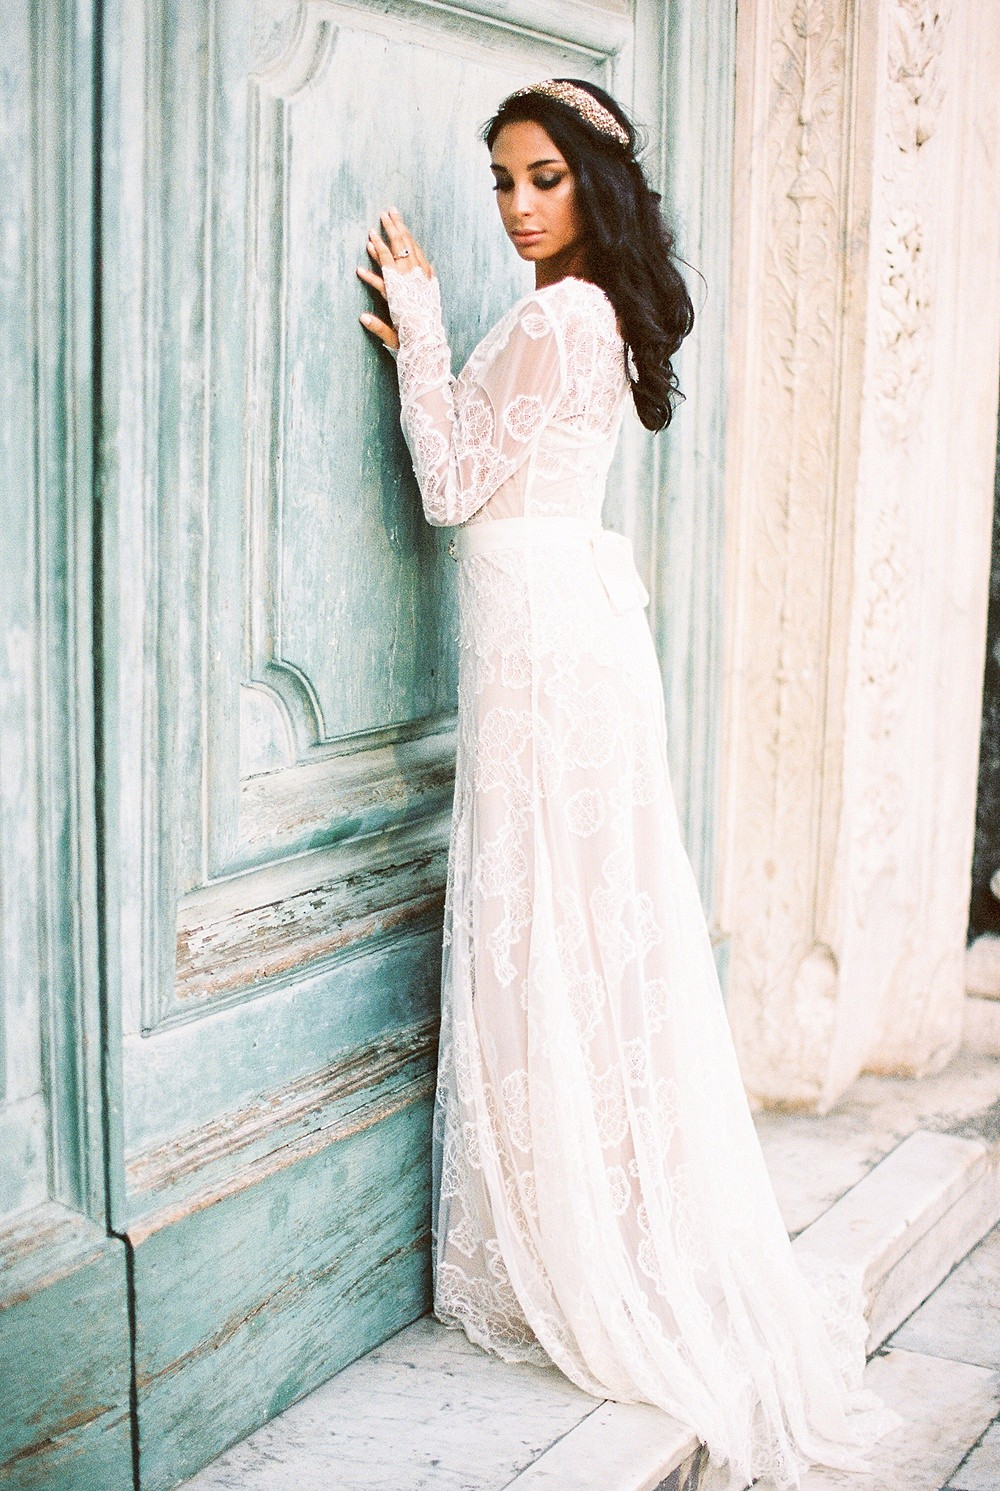 Italian Gilded Wedding Inspiration